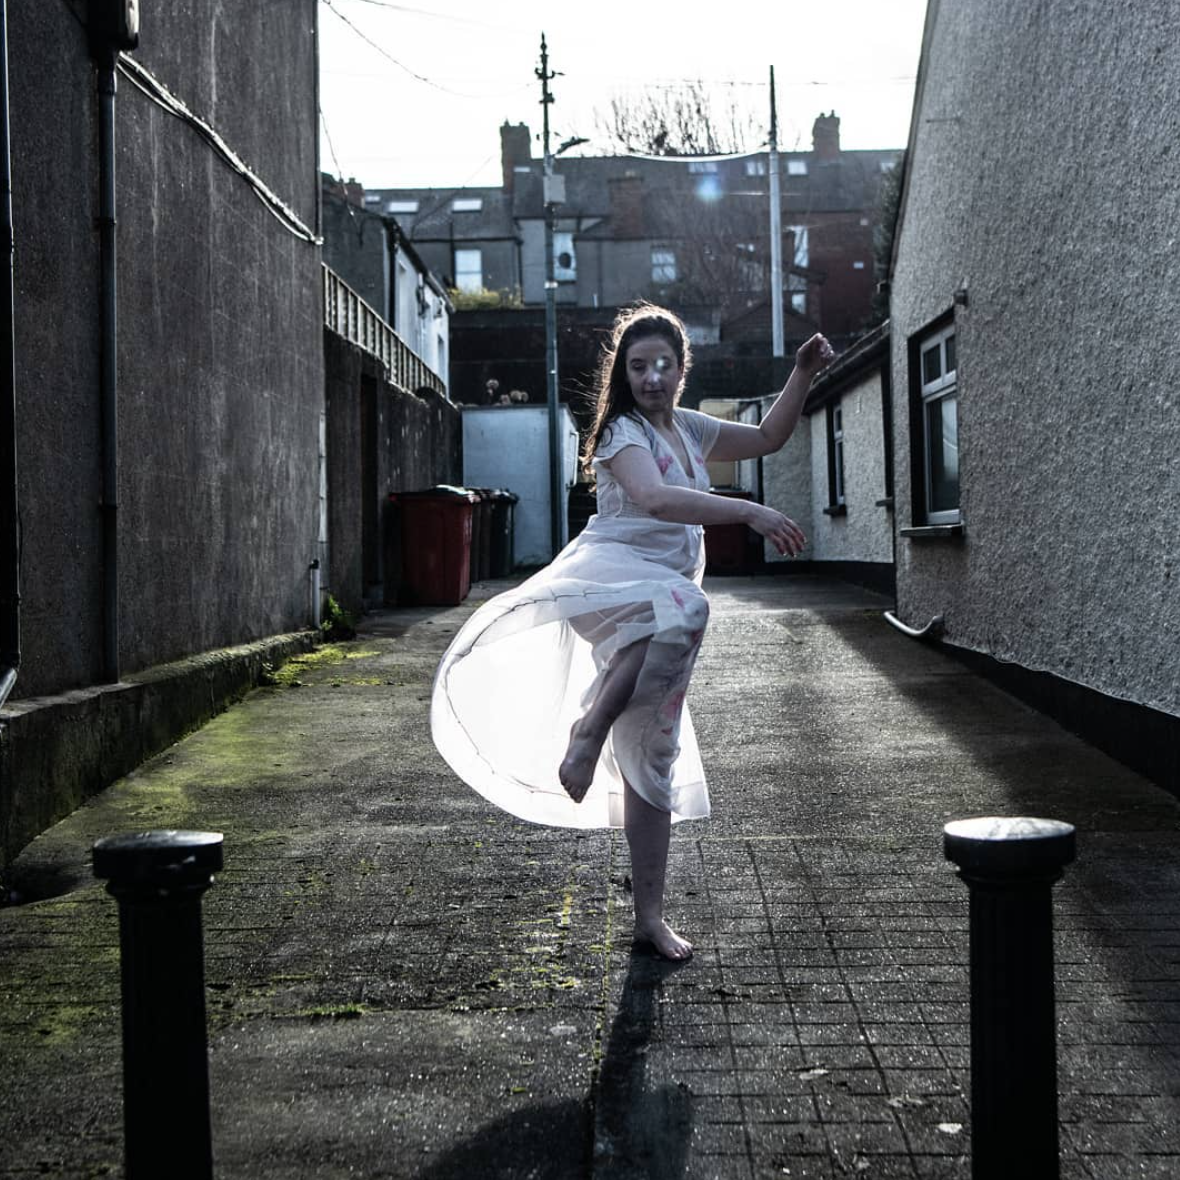 Photo of a white woman dancing in a white dress, backlit in an urban alleyway